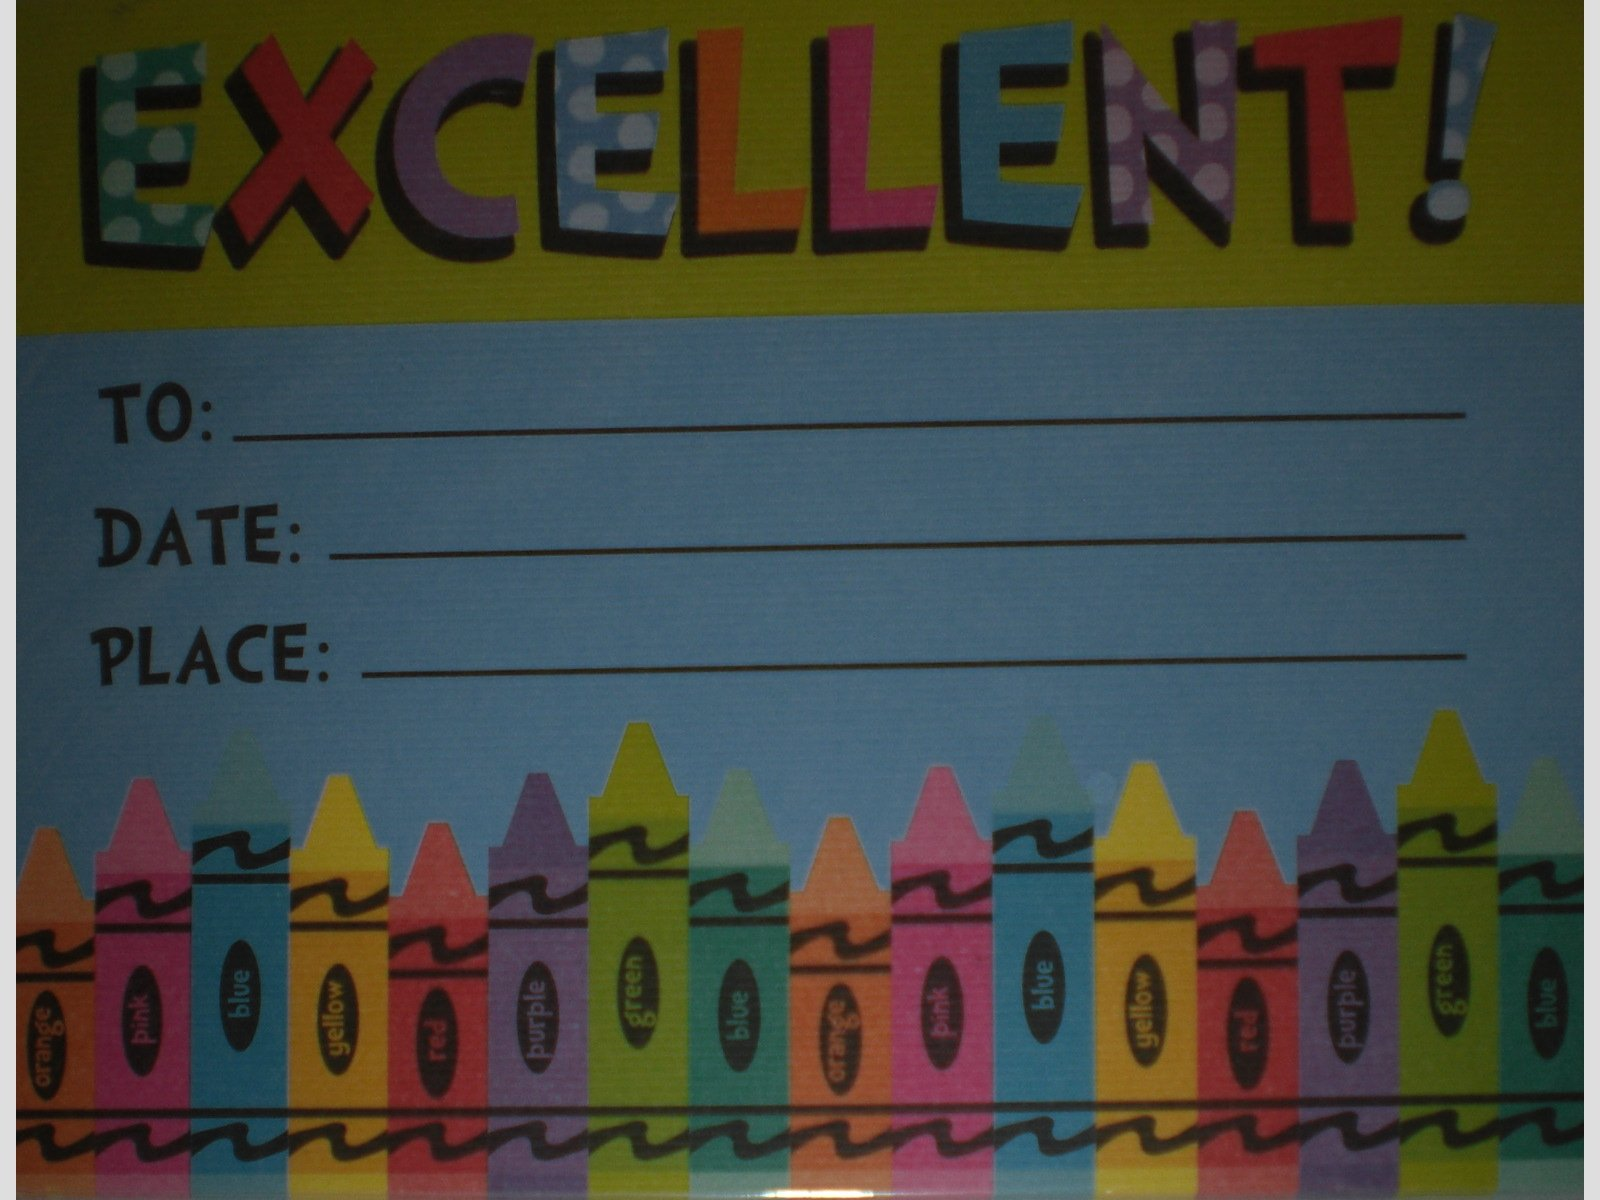 Excellent Award Certificates - Crayons - Pack of 24